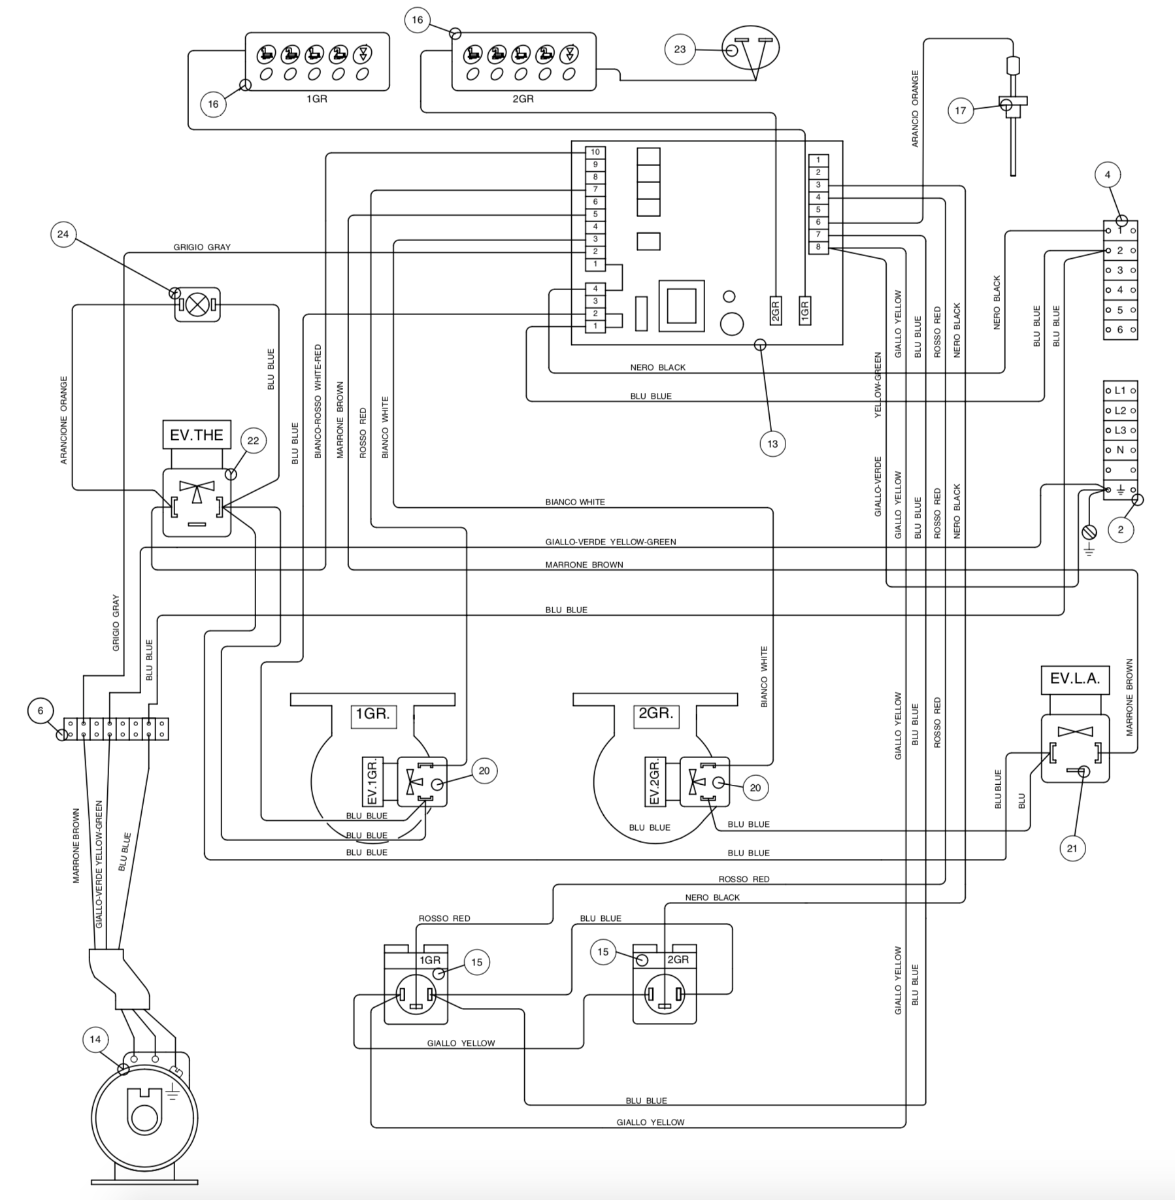 Switch Wiring Diagram Circuit Diagram Switch On Thread How To Wire